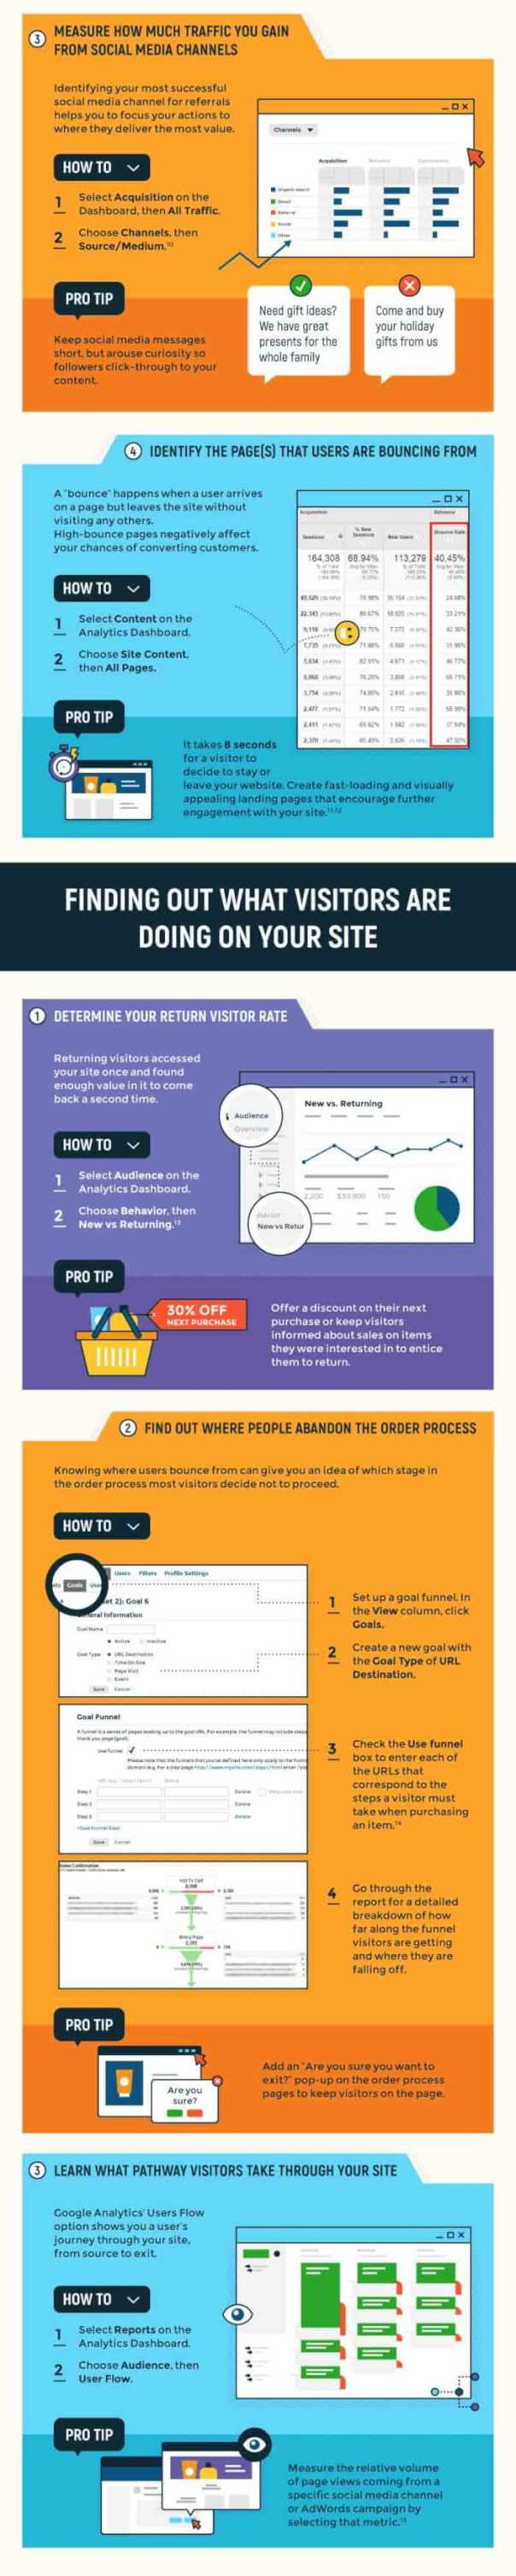 [Infographic]-The-Small-Business-Guide-to-Google-Analytics_03